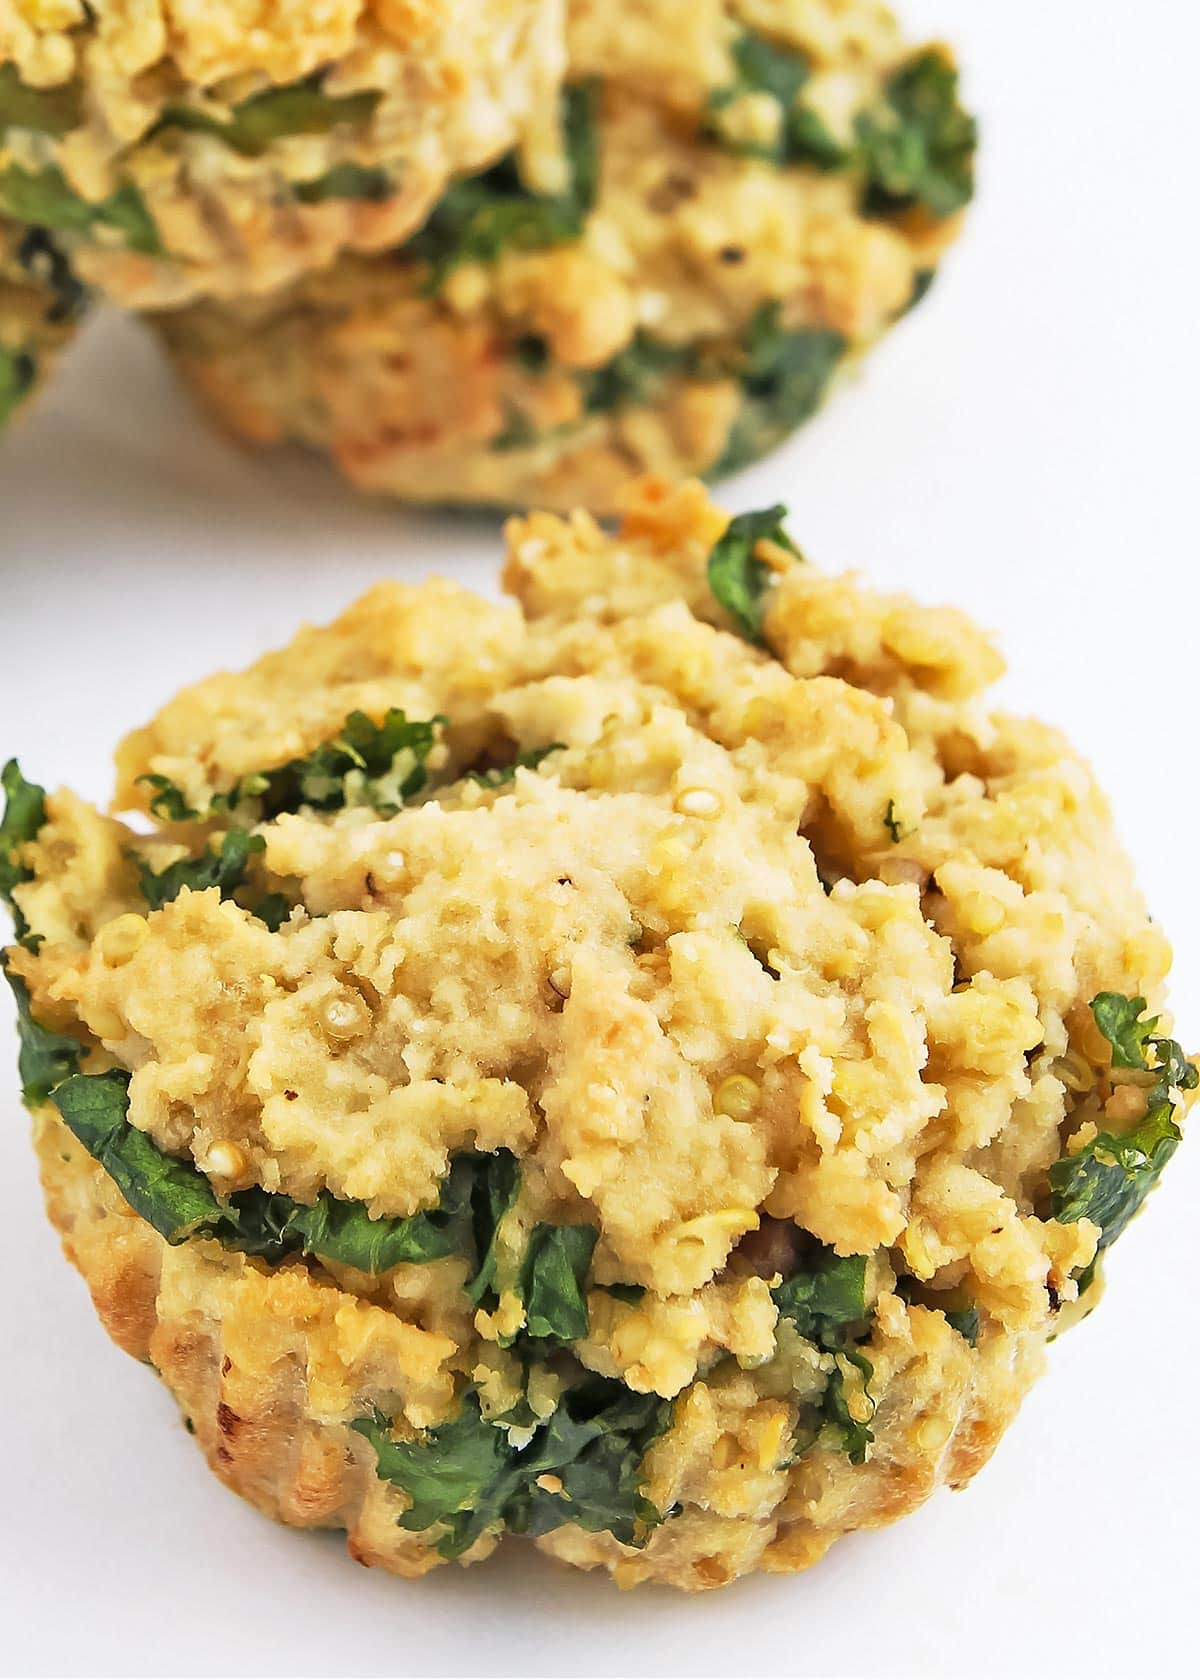 quinoa muffins with kale